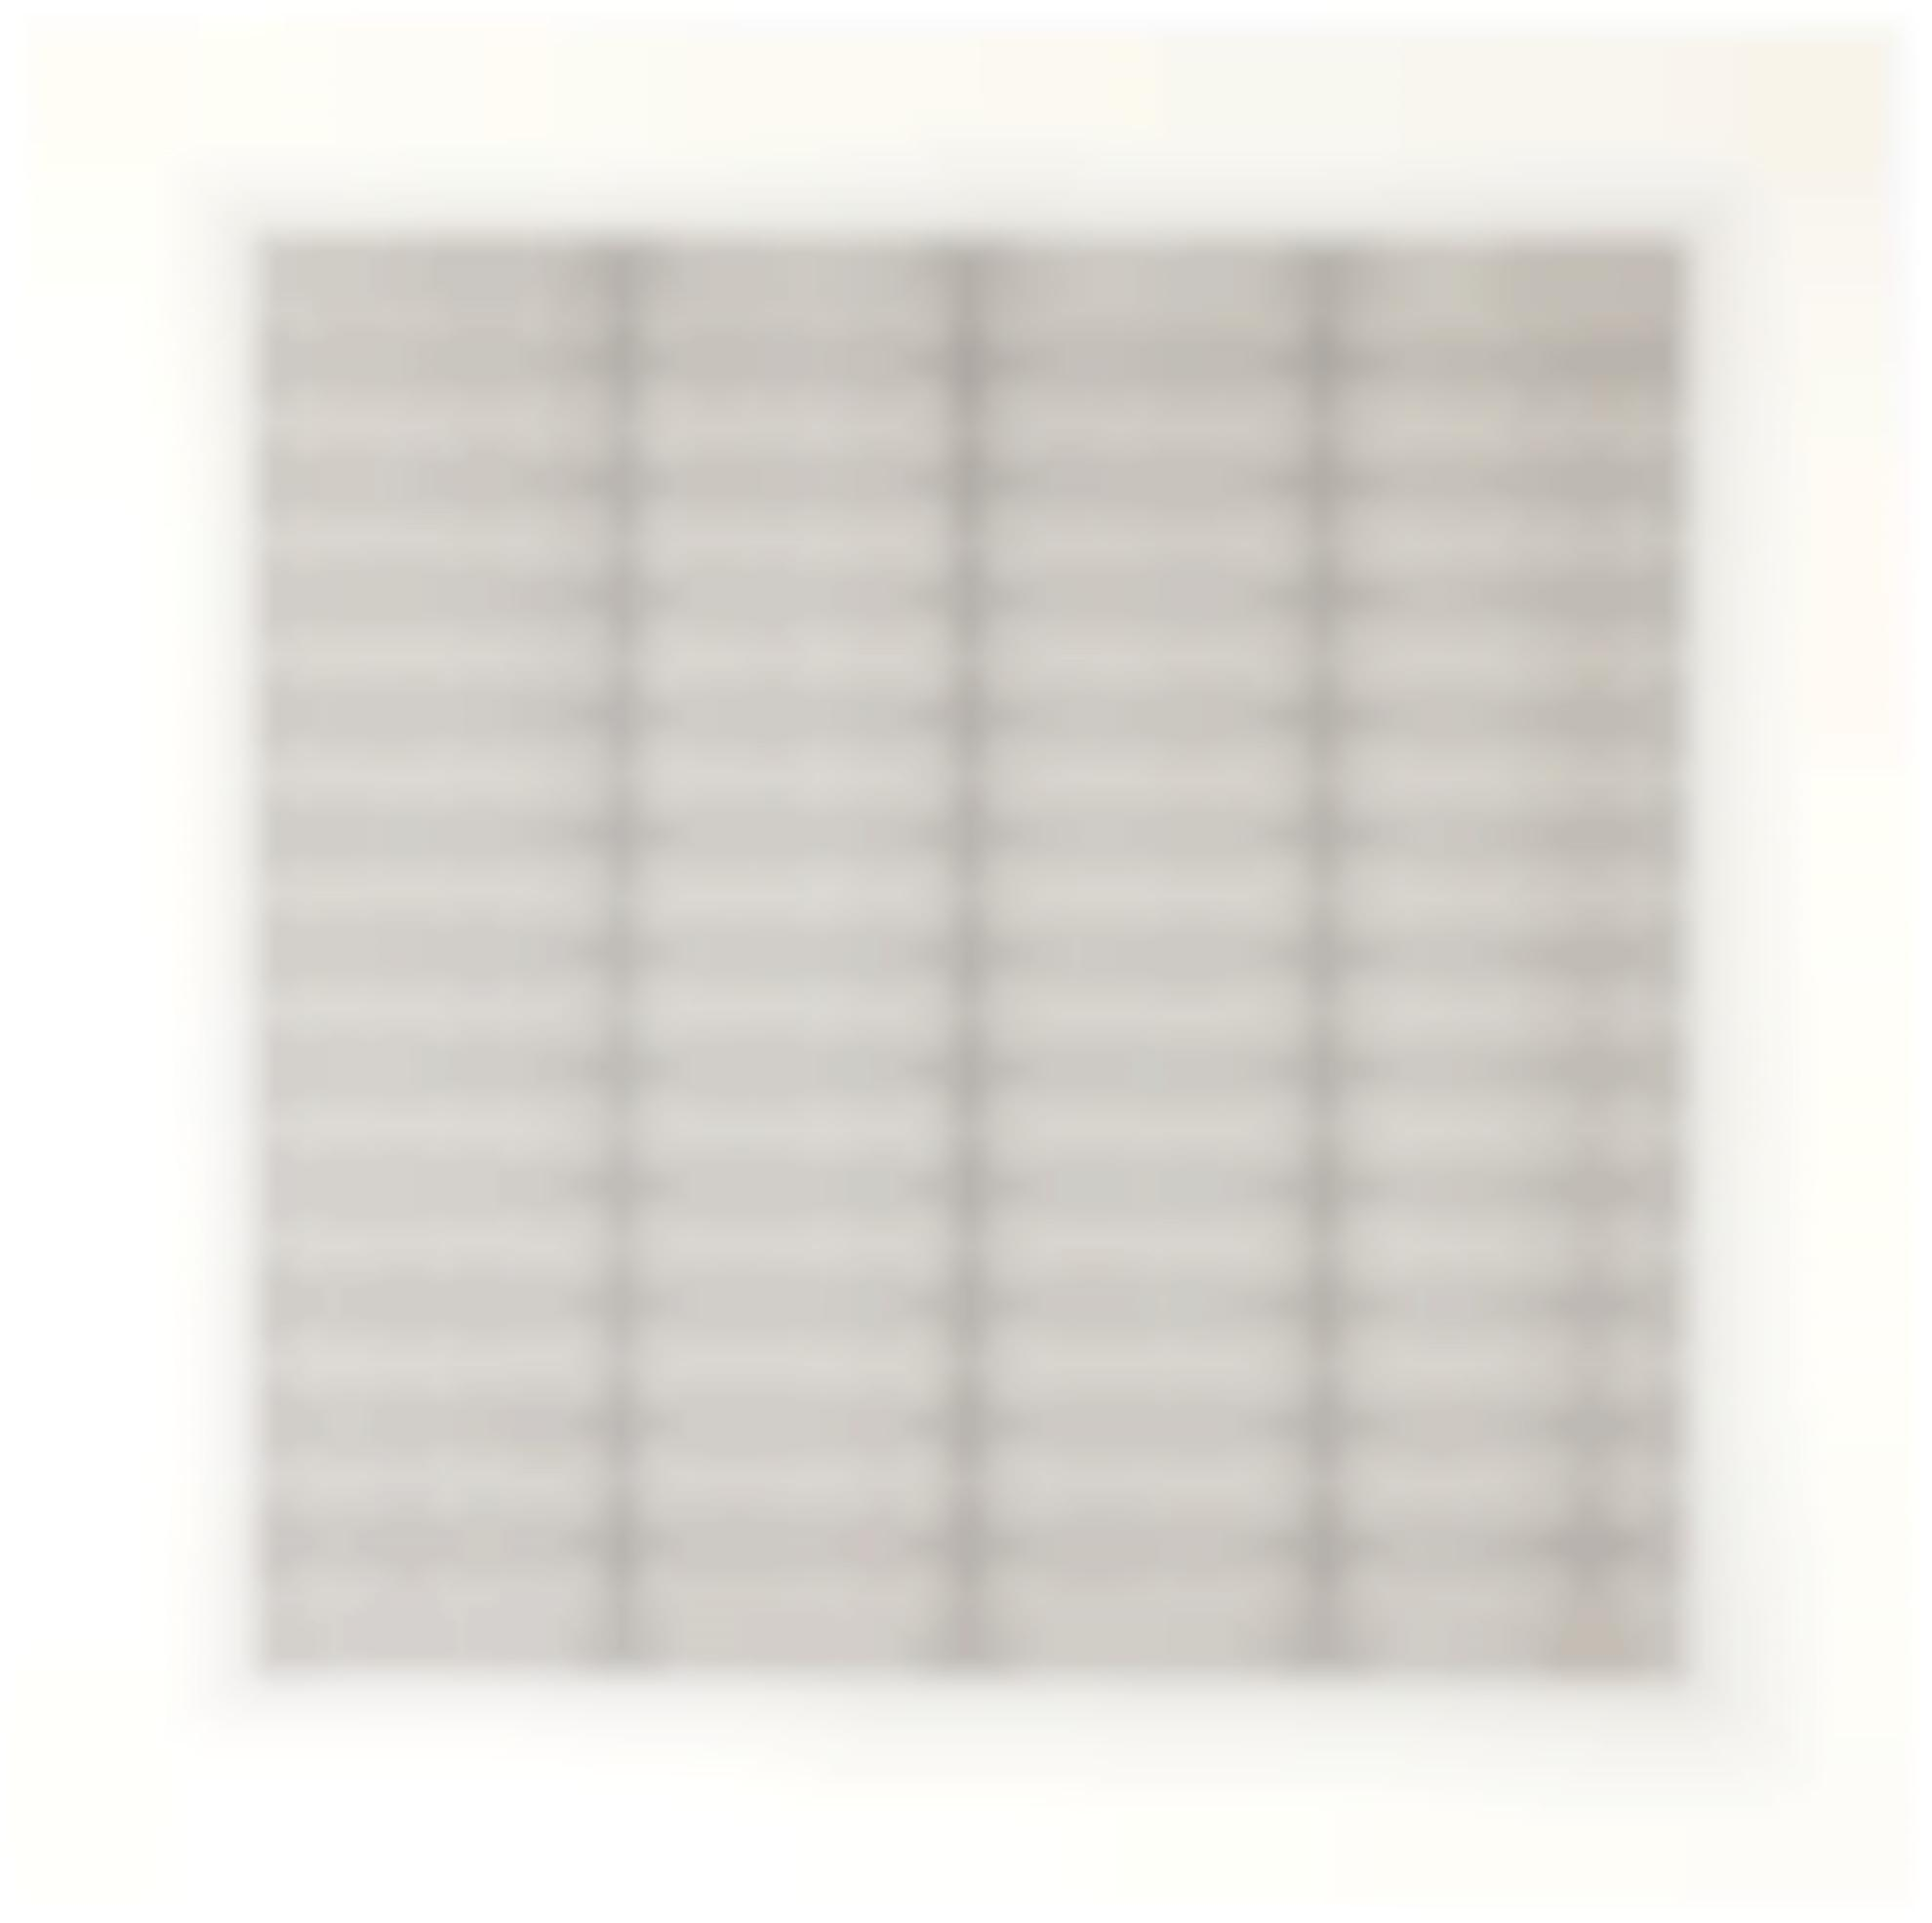 Agnes Martin-Paintings And Drawings-1991